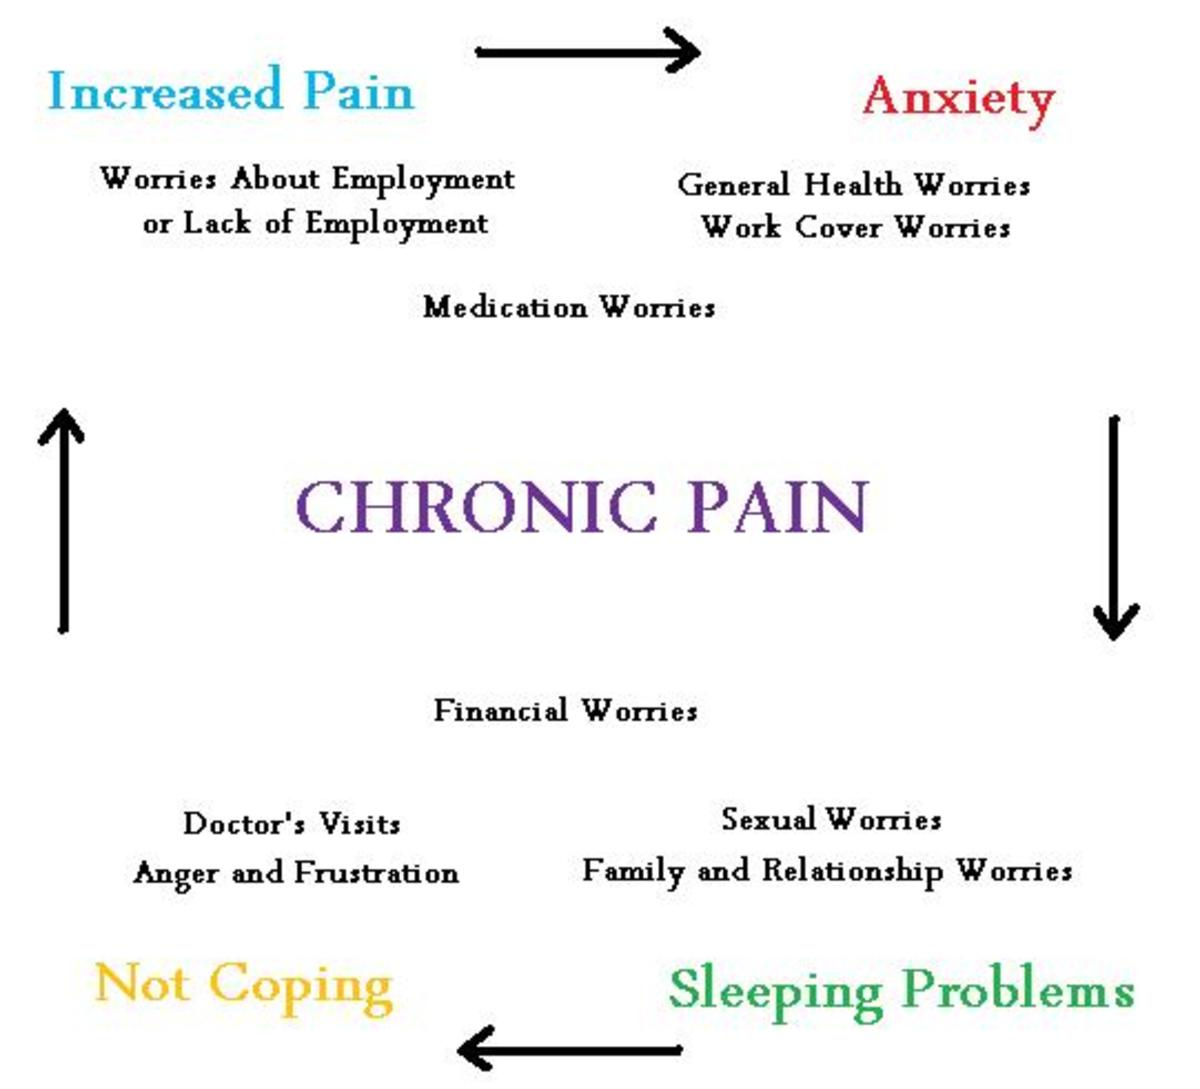 Your life can become a downward spiral it you don't take the precautions your body needs to be as pain free as possible.